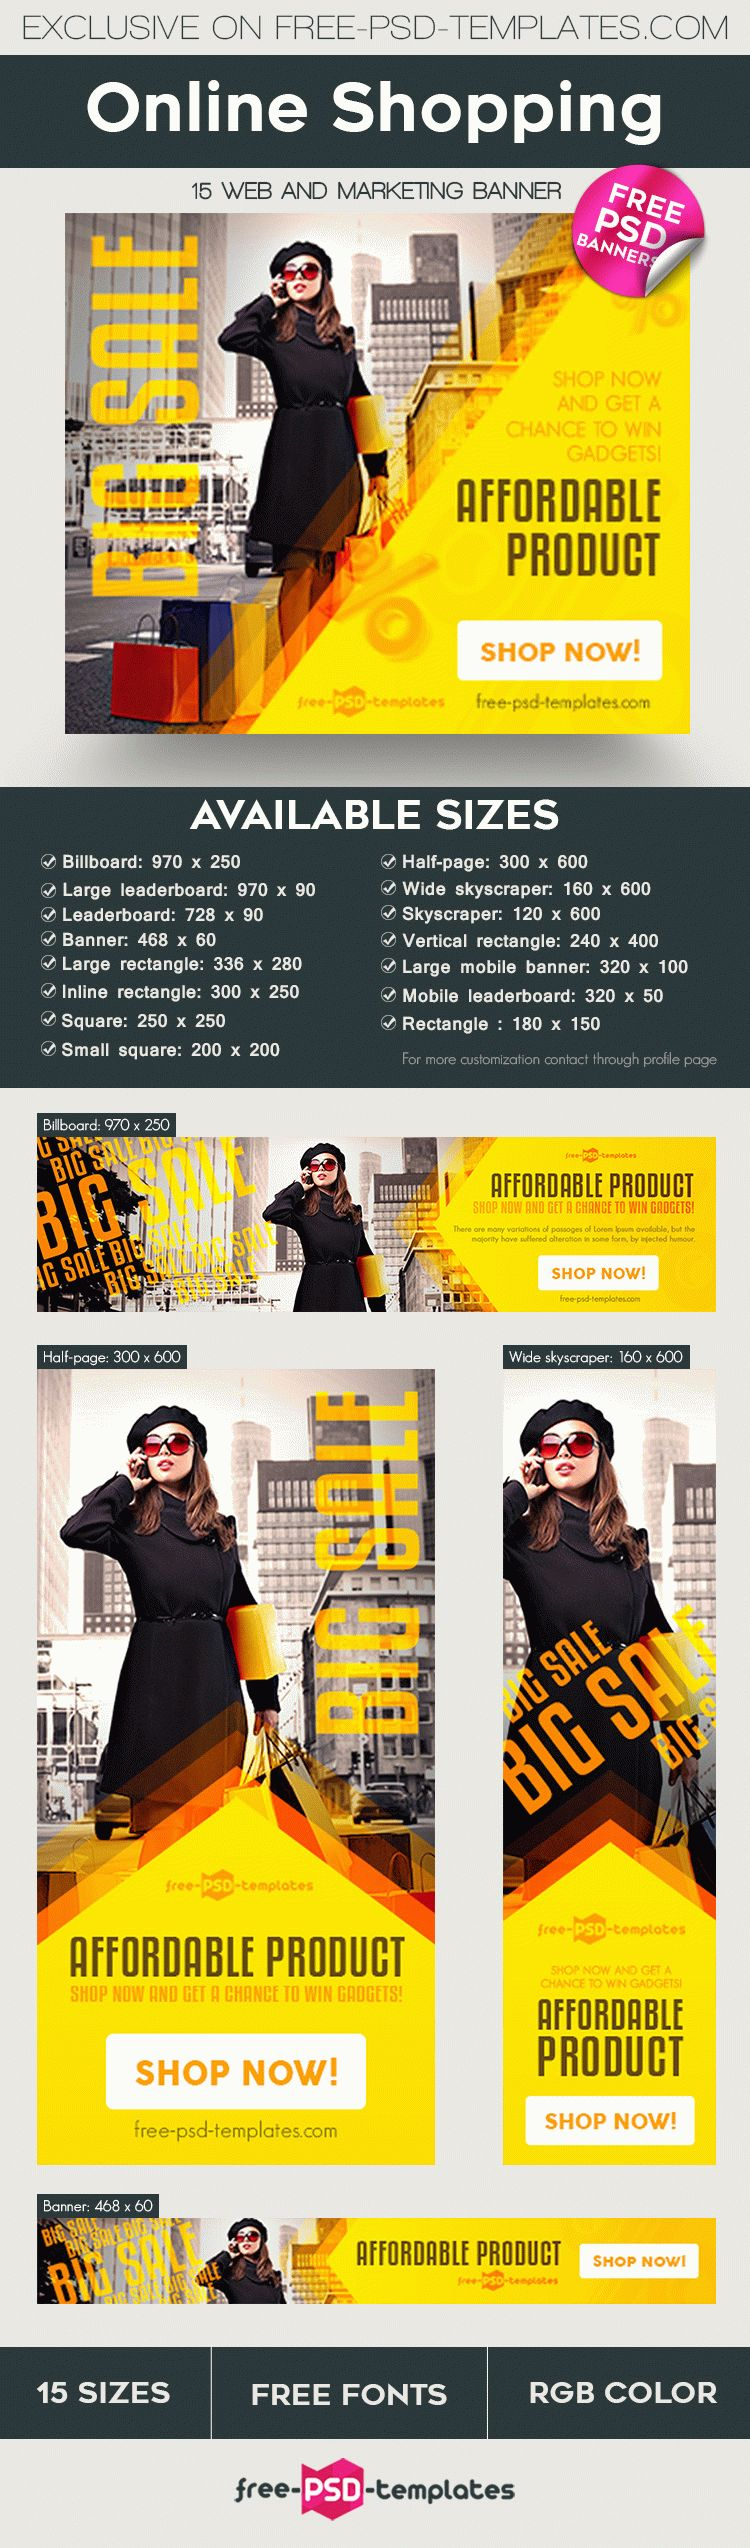 15 Free Online Shopping Banner in PSD | Free PSD Templates